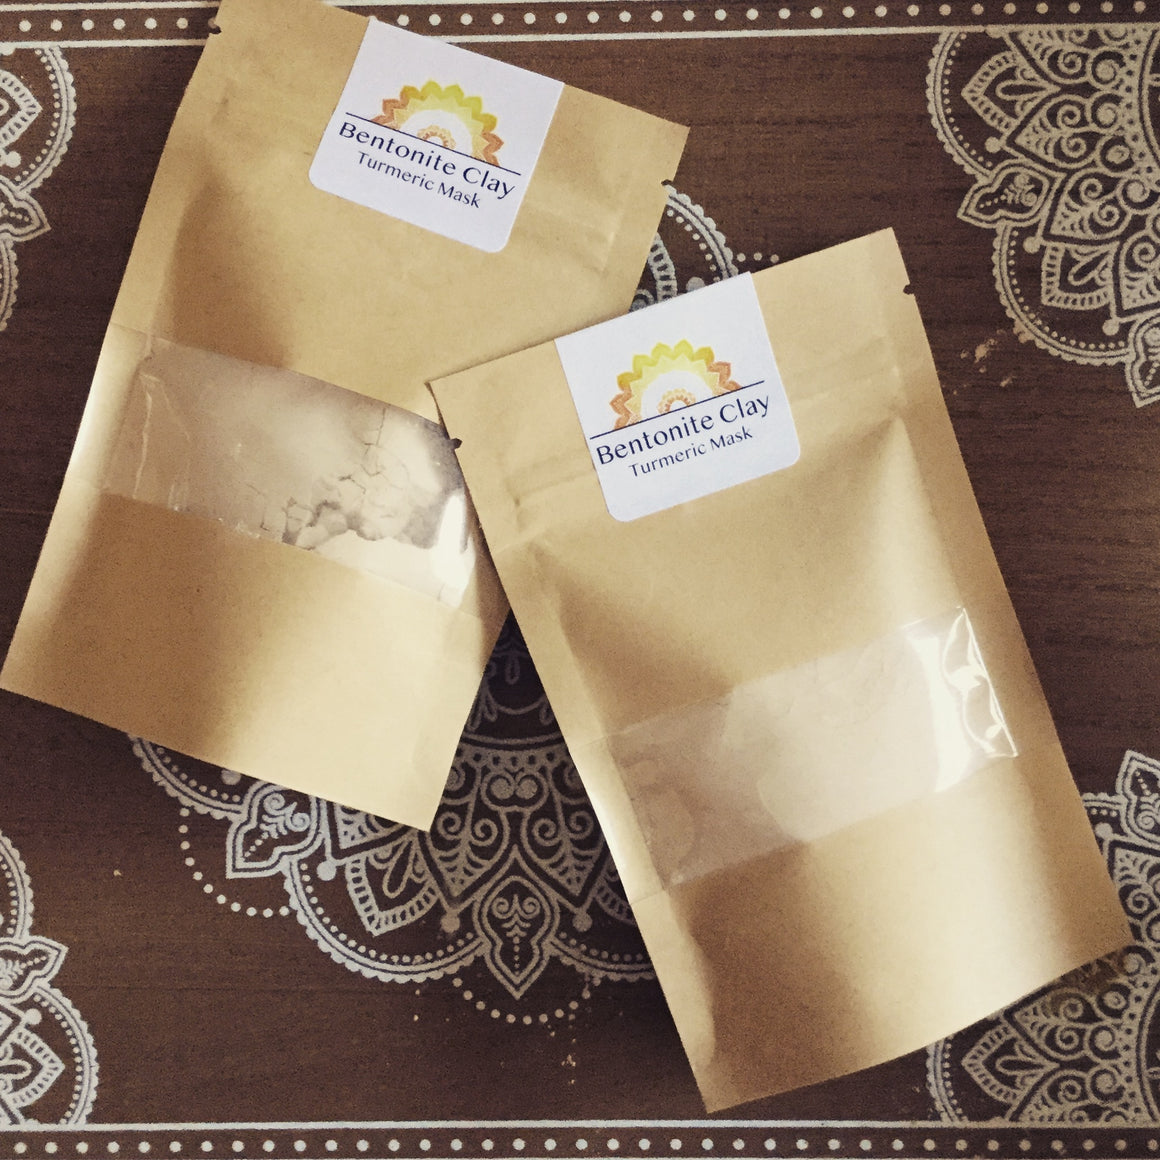 Bentonite Clay & Turmeric Face Mask 50g (6 masks)